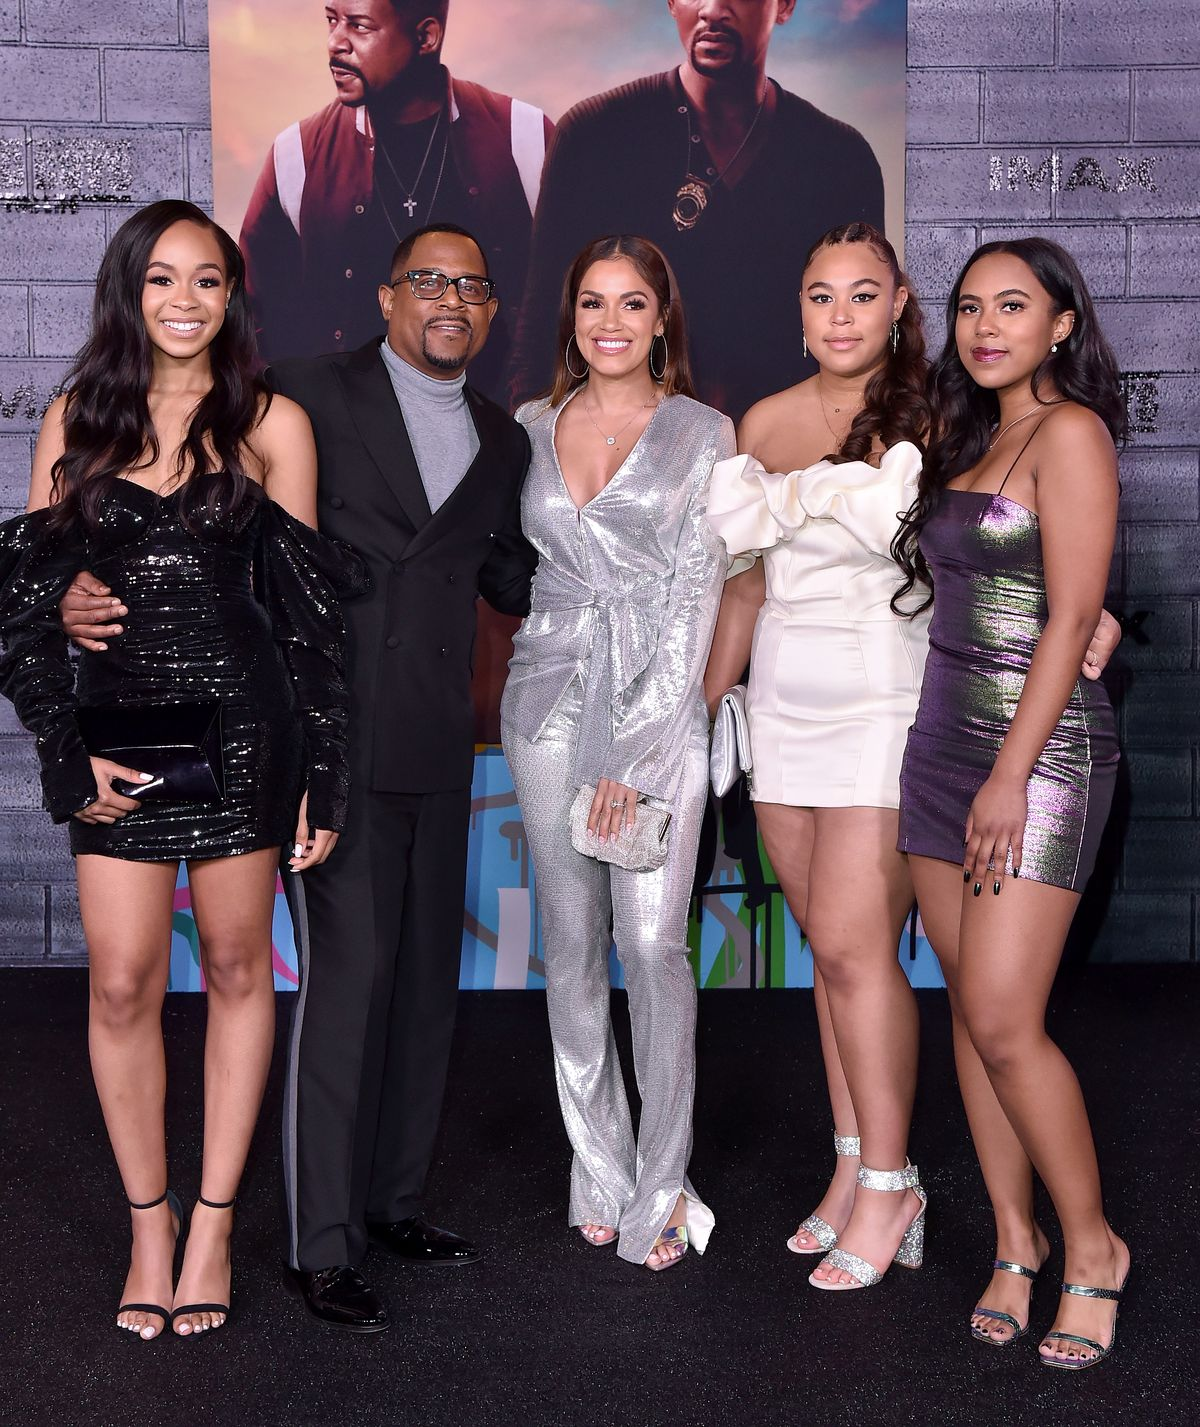 """Martin Lawrence attends the premiere of """"Bad Boys For Life"""" with Roberta Moradfar (in the silver pantsuit) and his 3 daughters in Hollywood, California. January 14, 2020. 